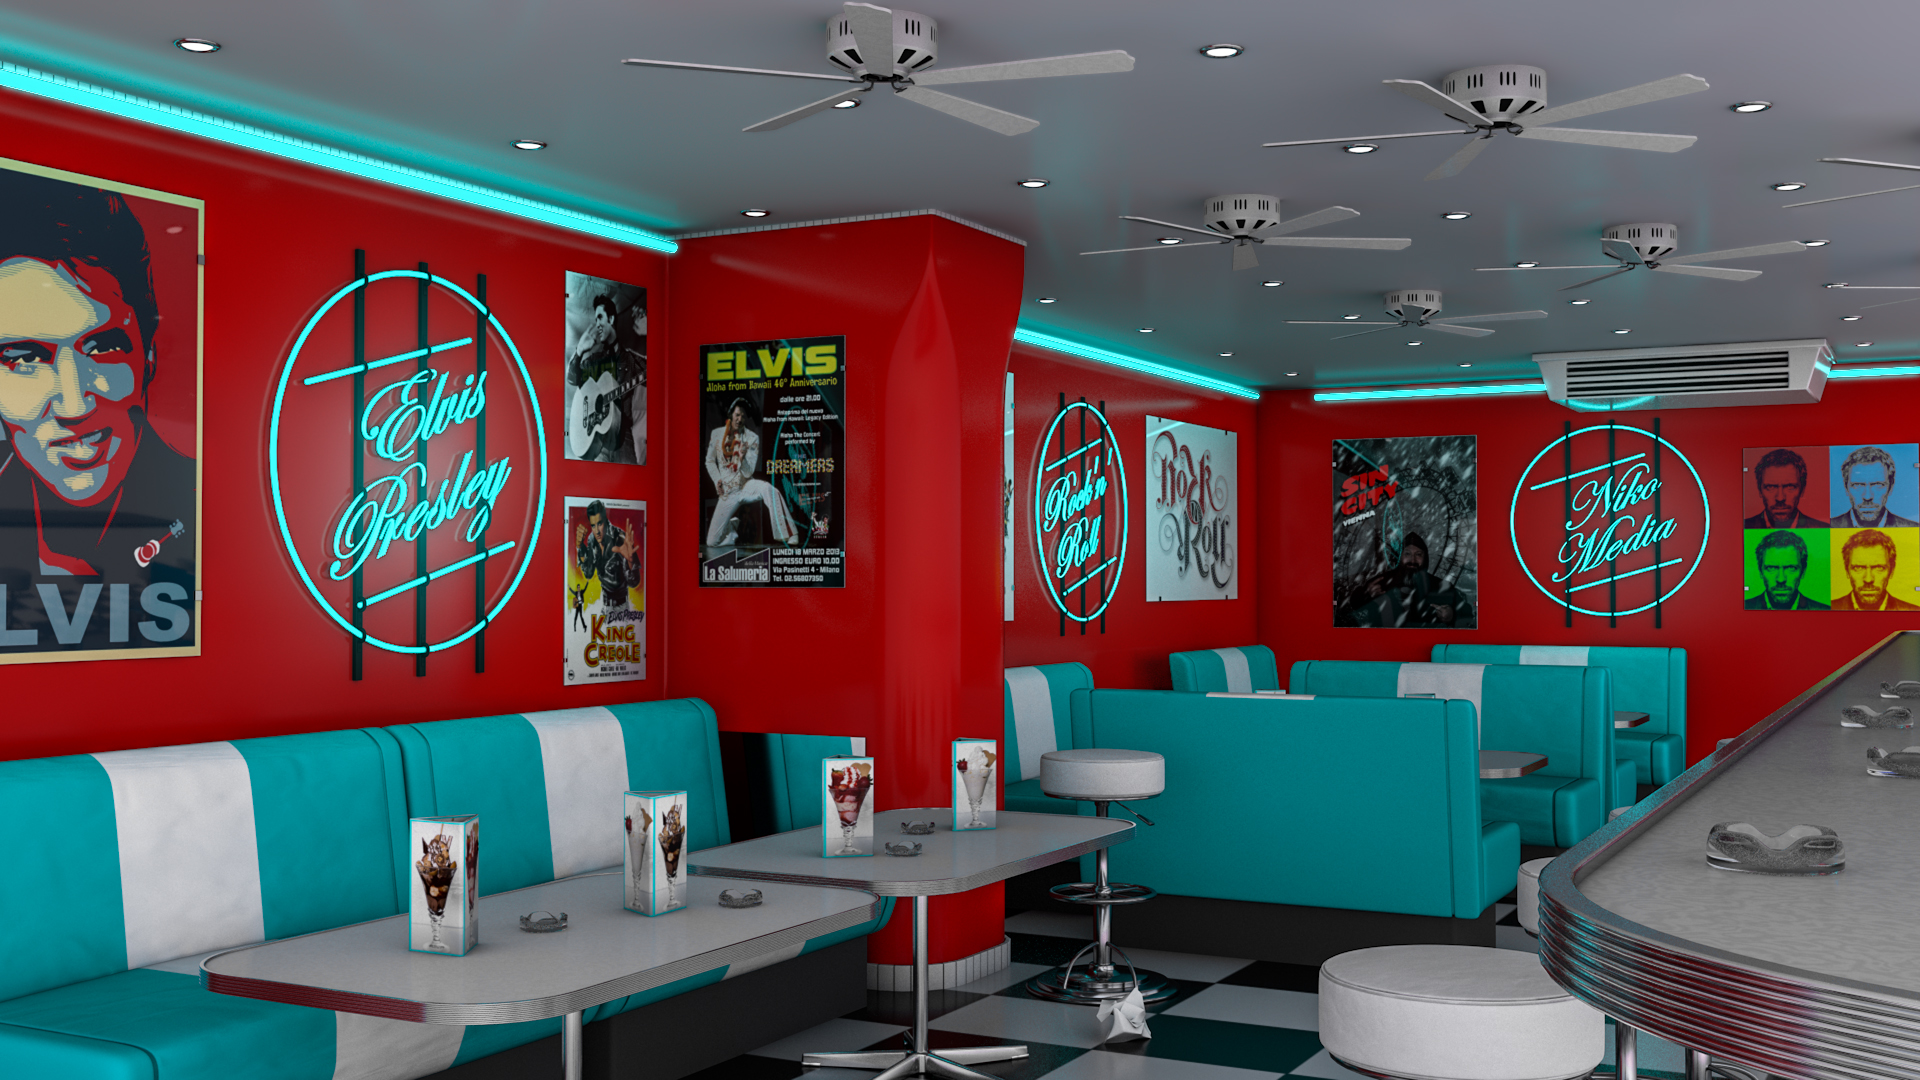 American diner by nikomedia on deviantart for Diner picture